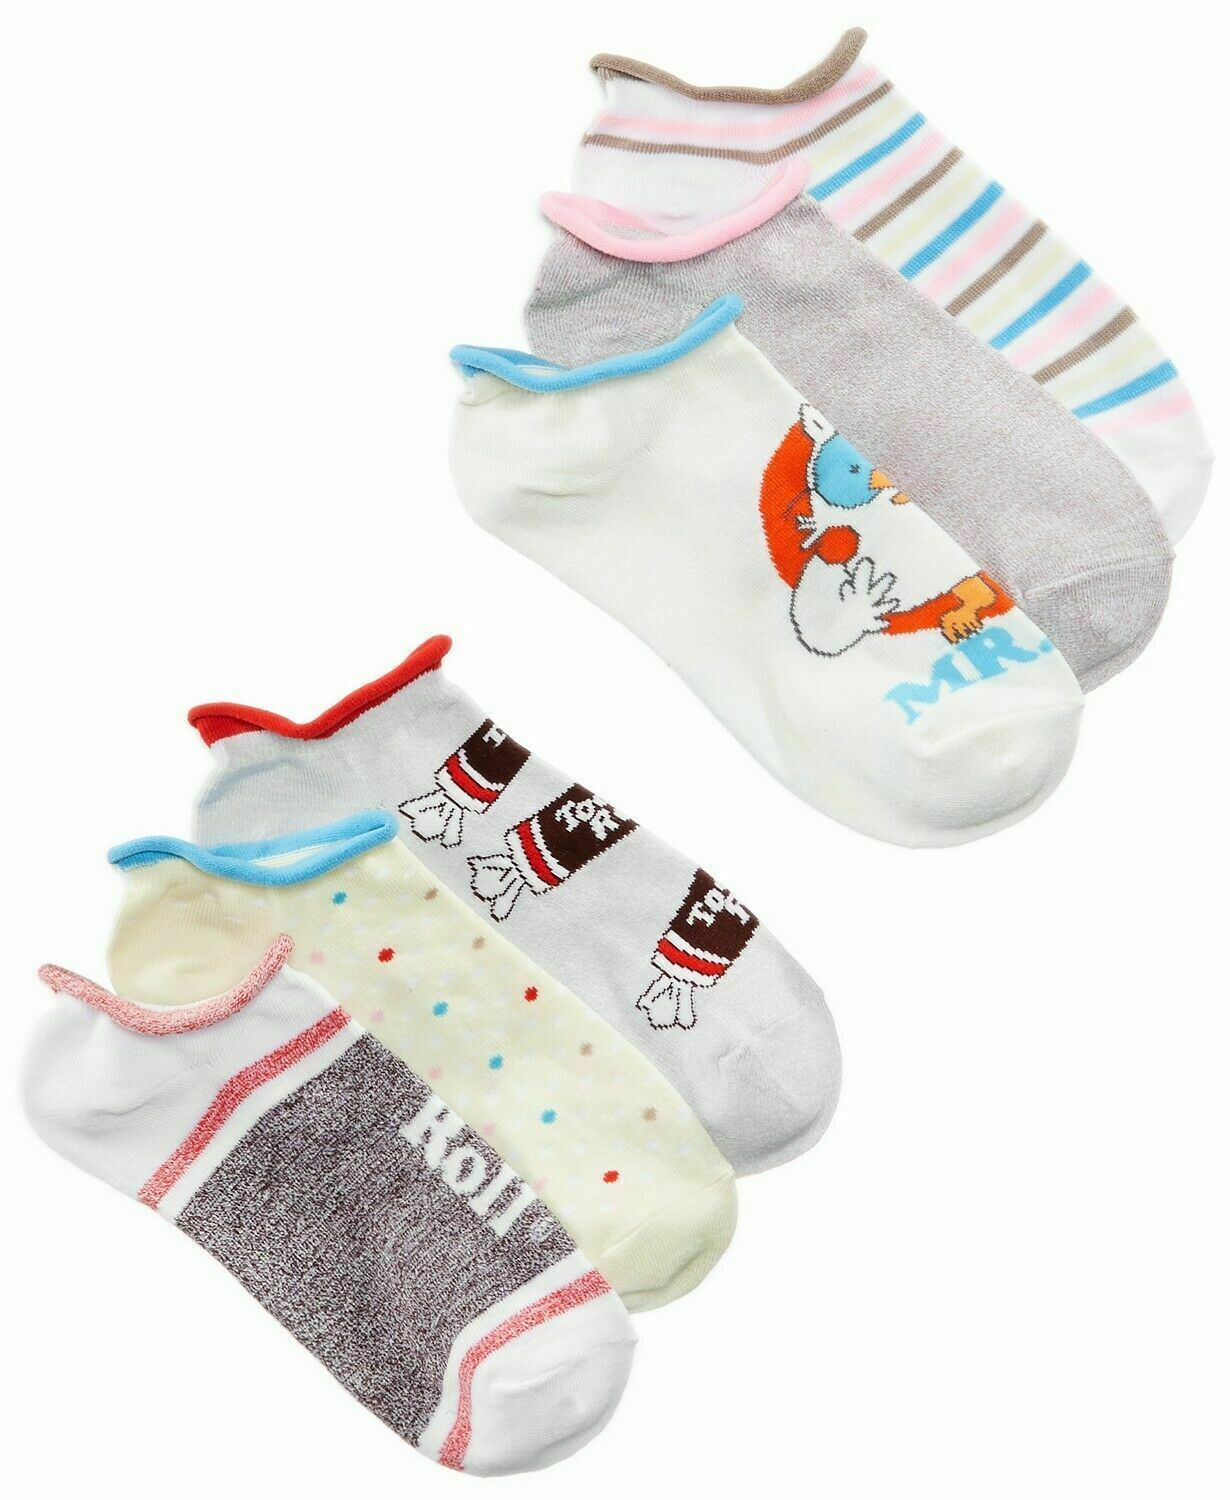 Primary image for Disney Women's 6-Pk Assorted Candy No-Show Socks, Size 9-11